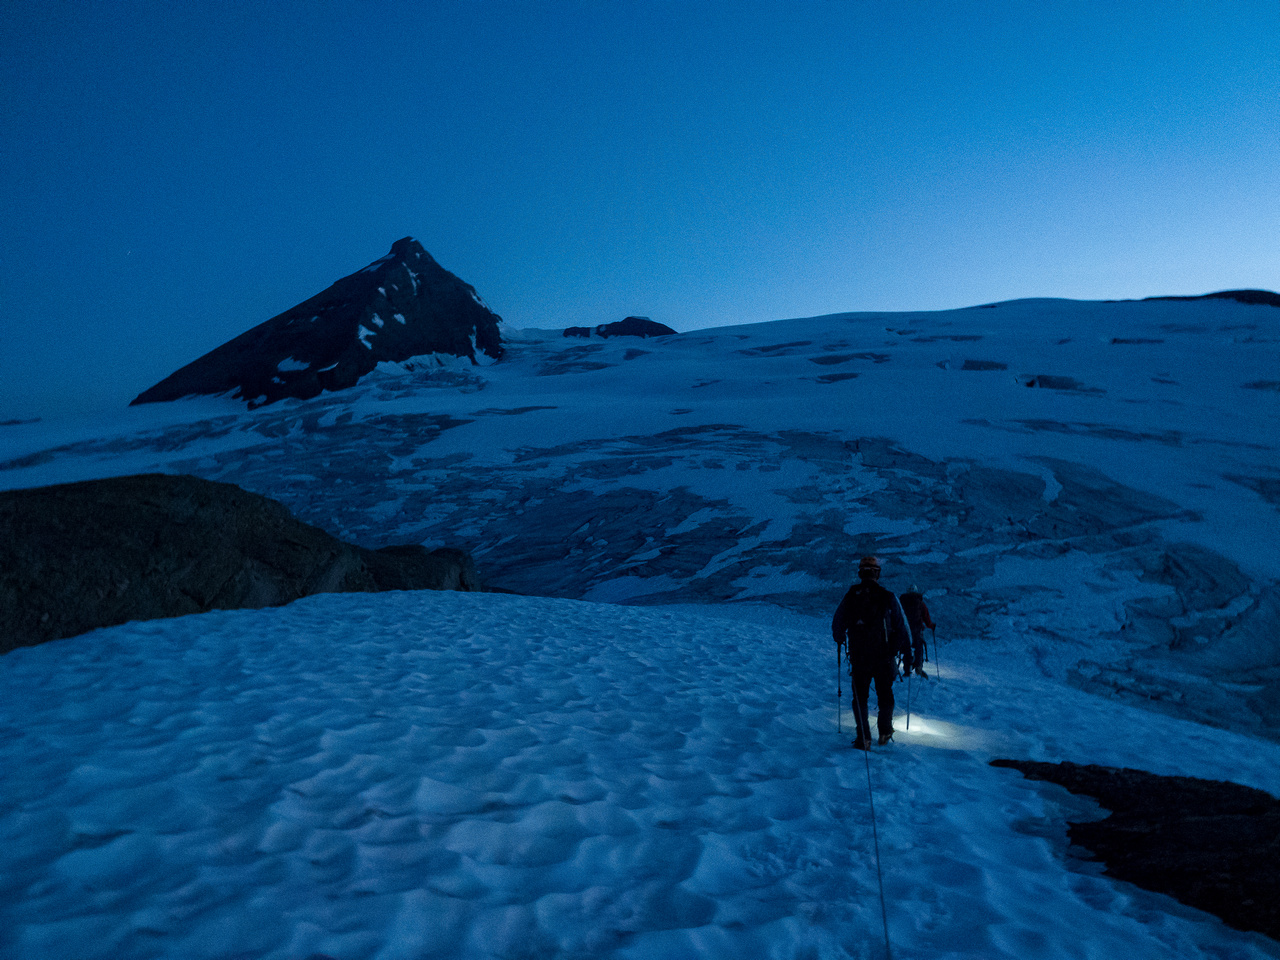 Starting out from camp with just enough light to spot crevasses.